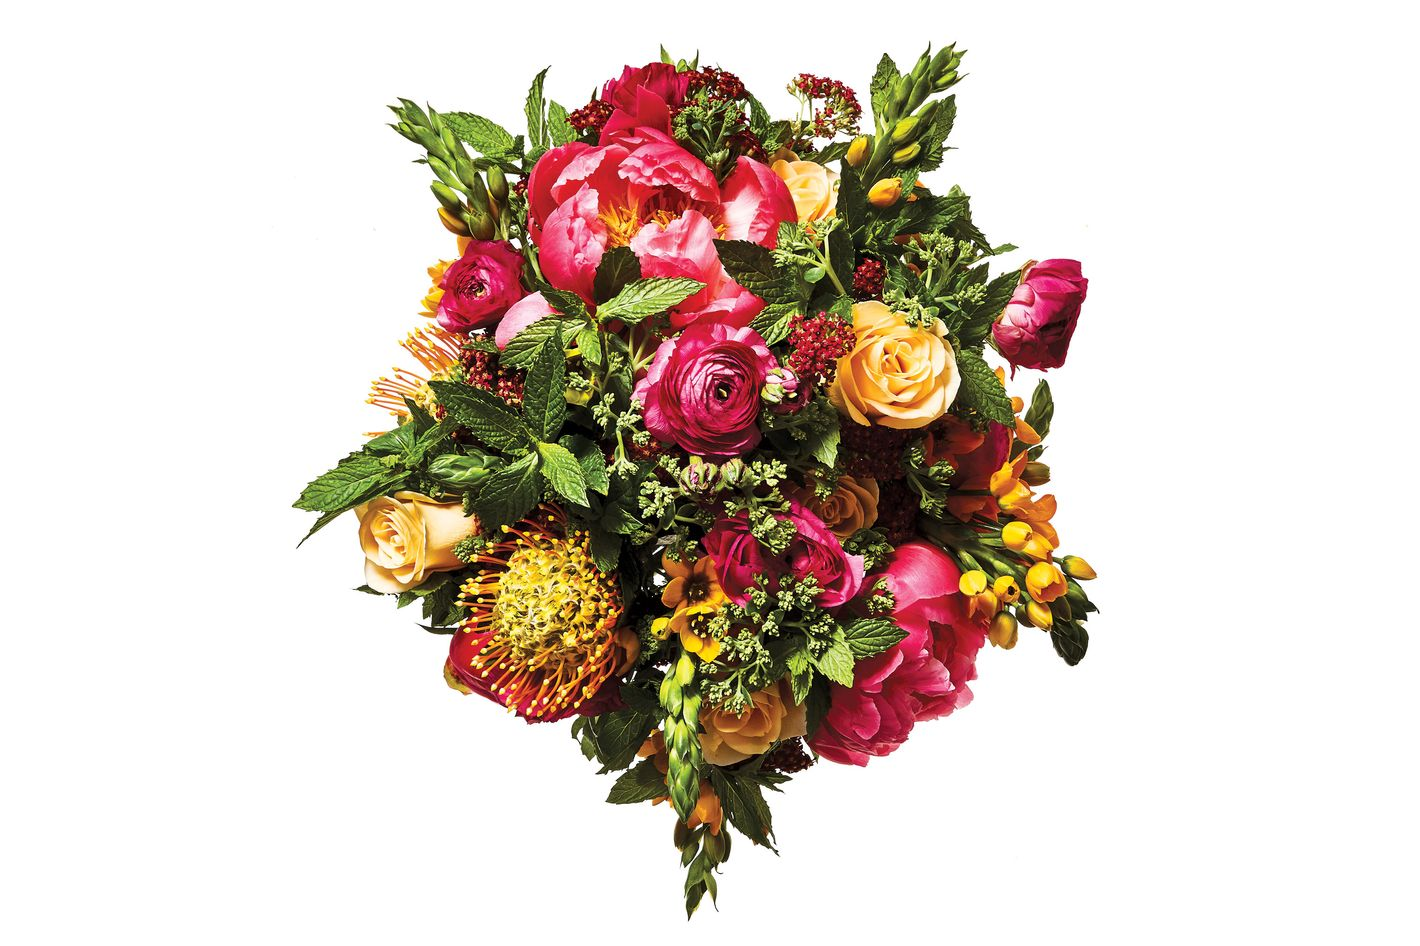 Peony, ranunculus, rose, chinch flower, mint, and pincushion protea